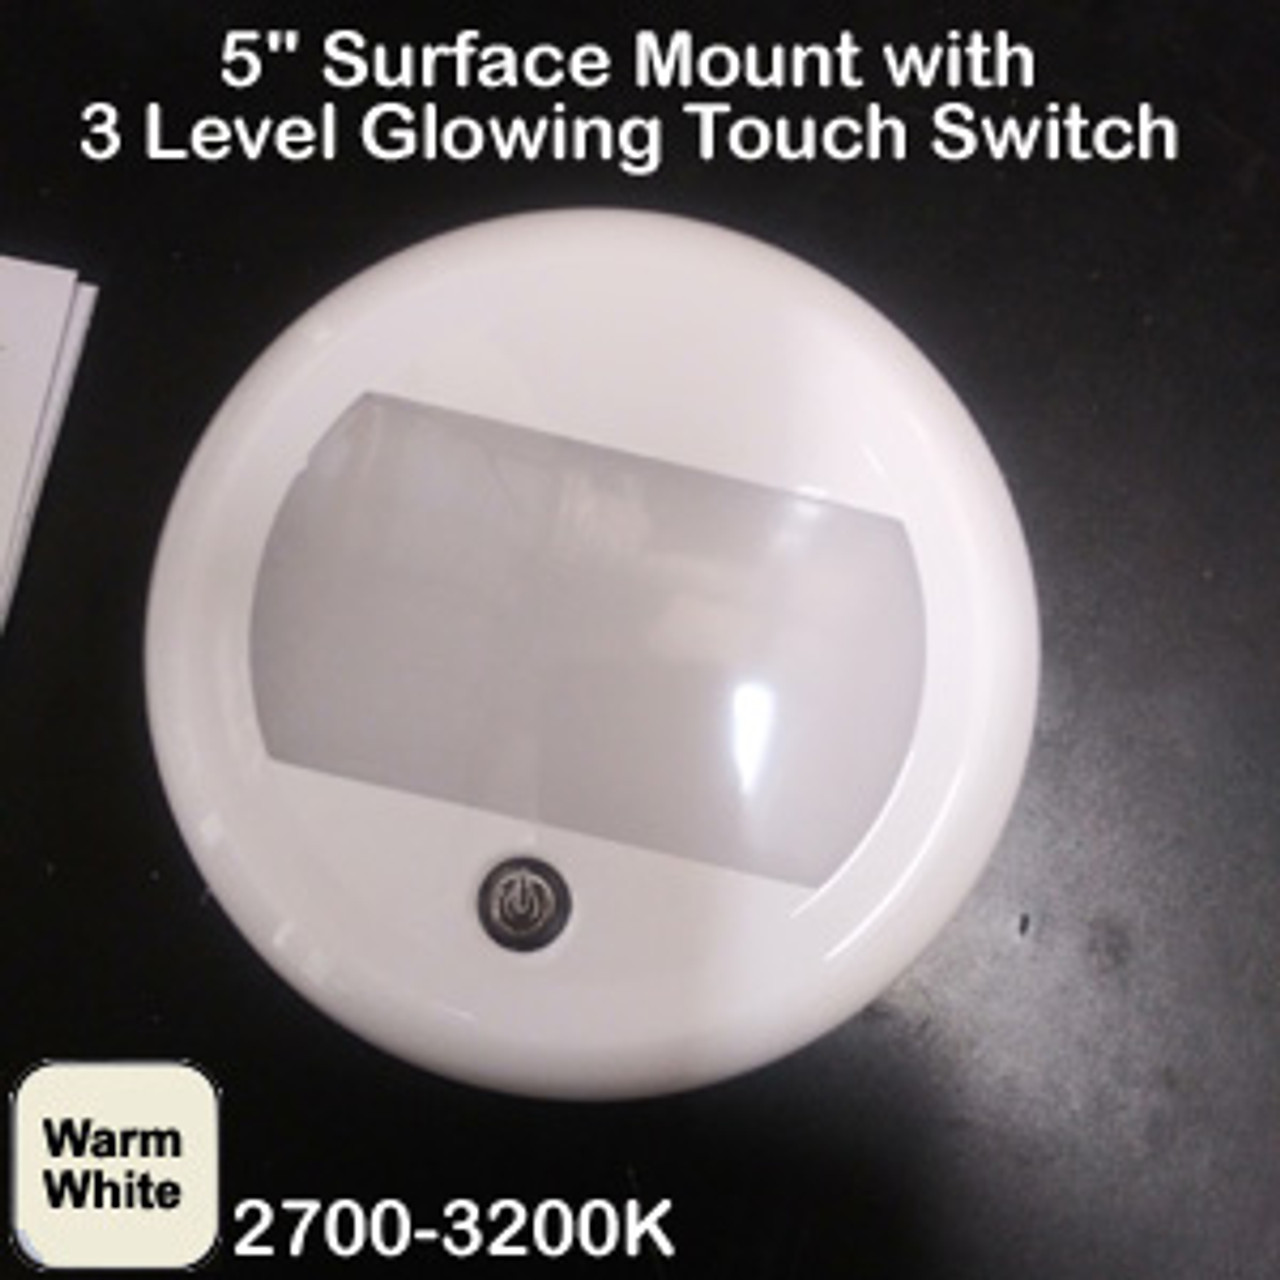 "Round SAN9101"" Round Dome with 3 Level Touch Switch Warm White"